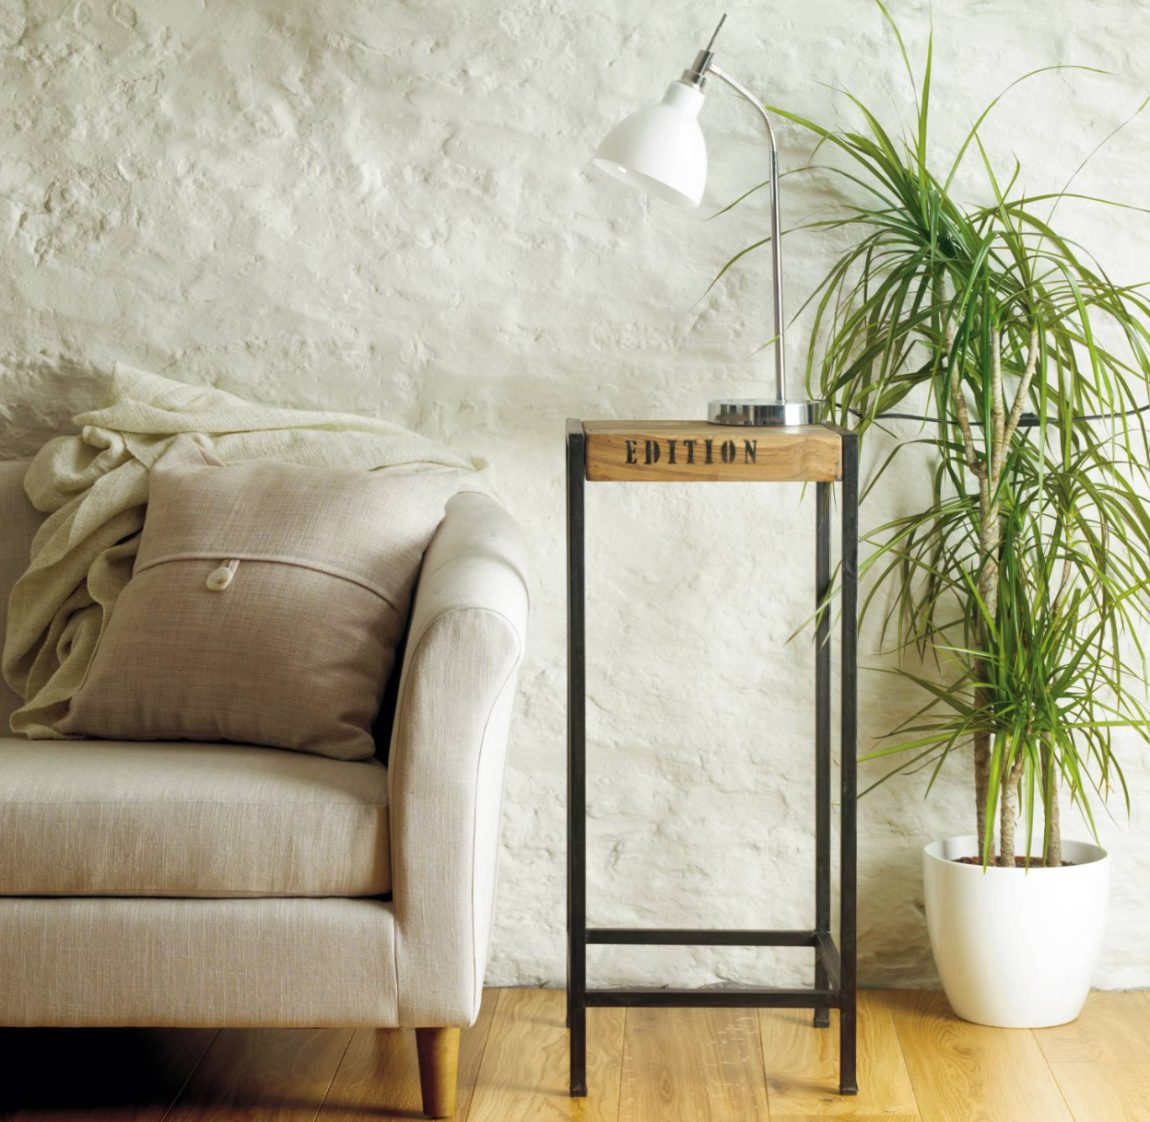 Room Ideas - How to Decorate a Room without Windows